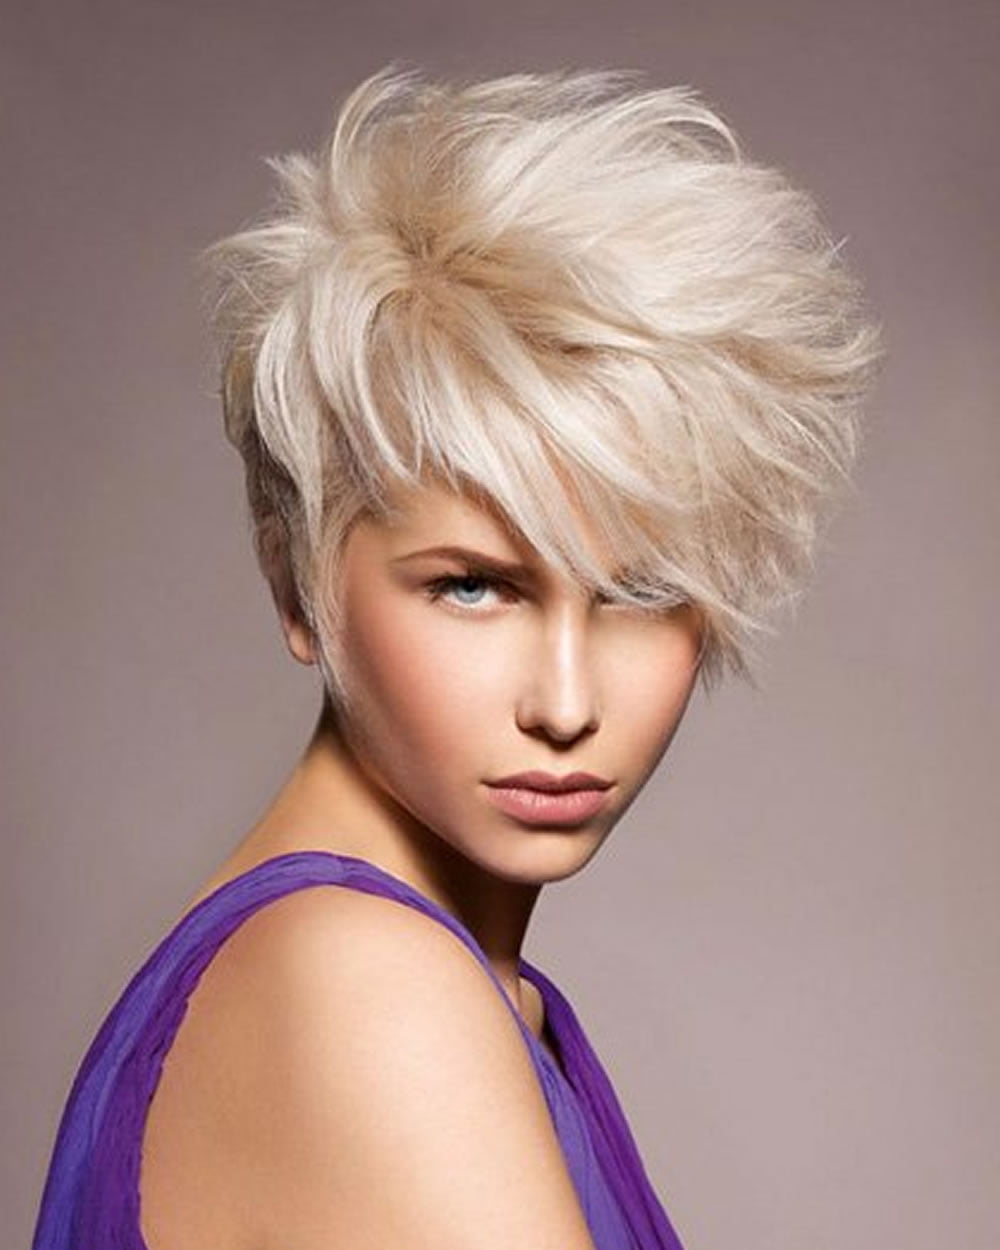 Blonde Hairstyles and Haircuts Ideas